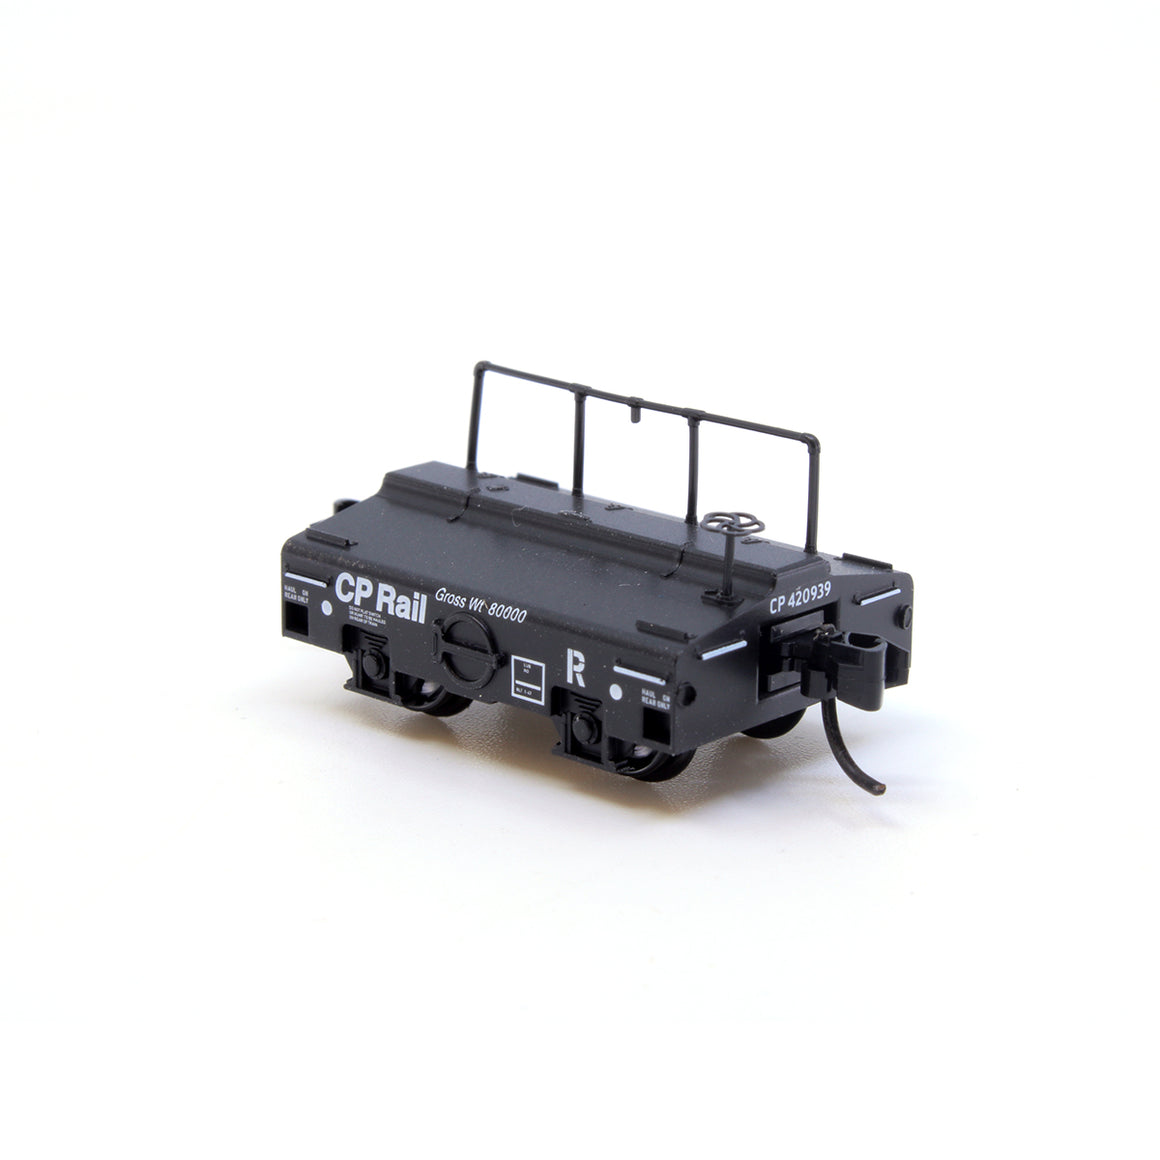 N Scale: Scale Test Car - CP Rail